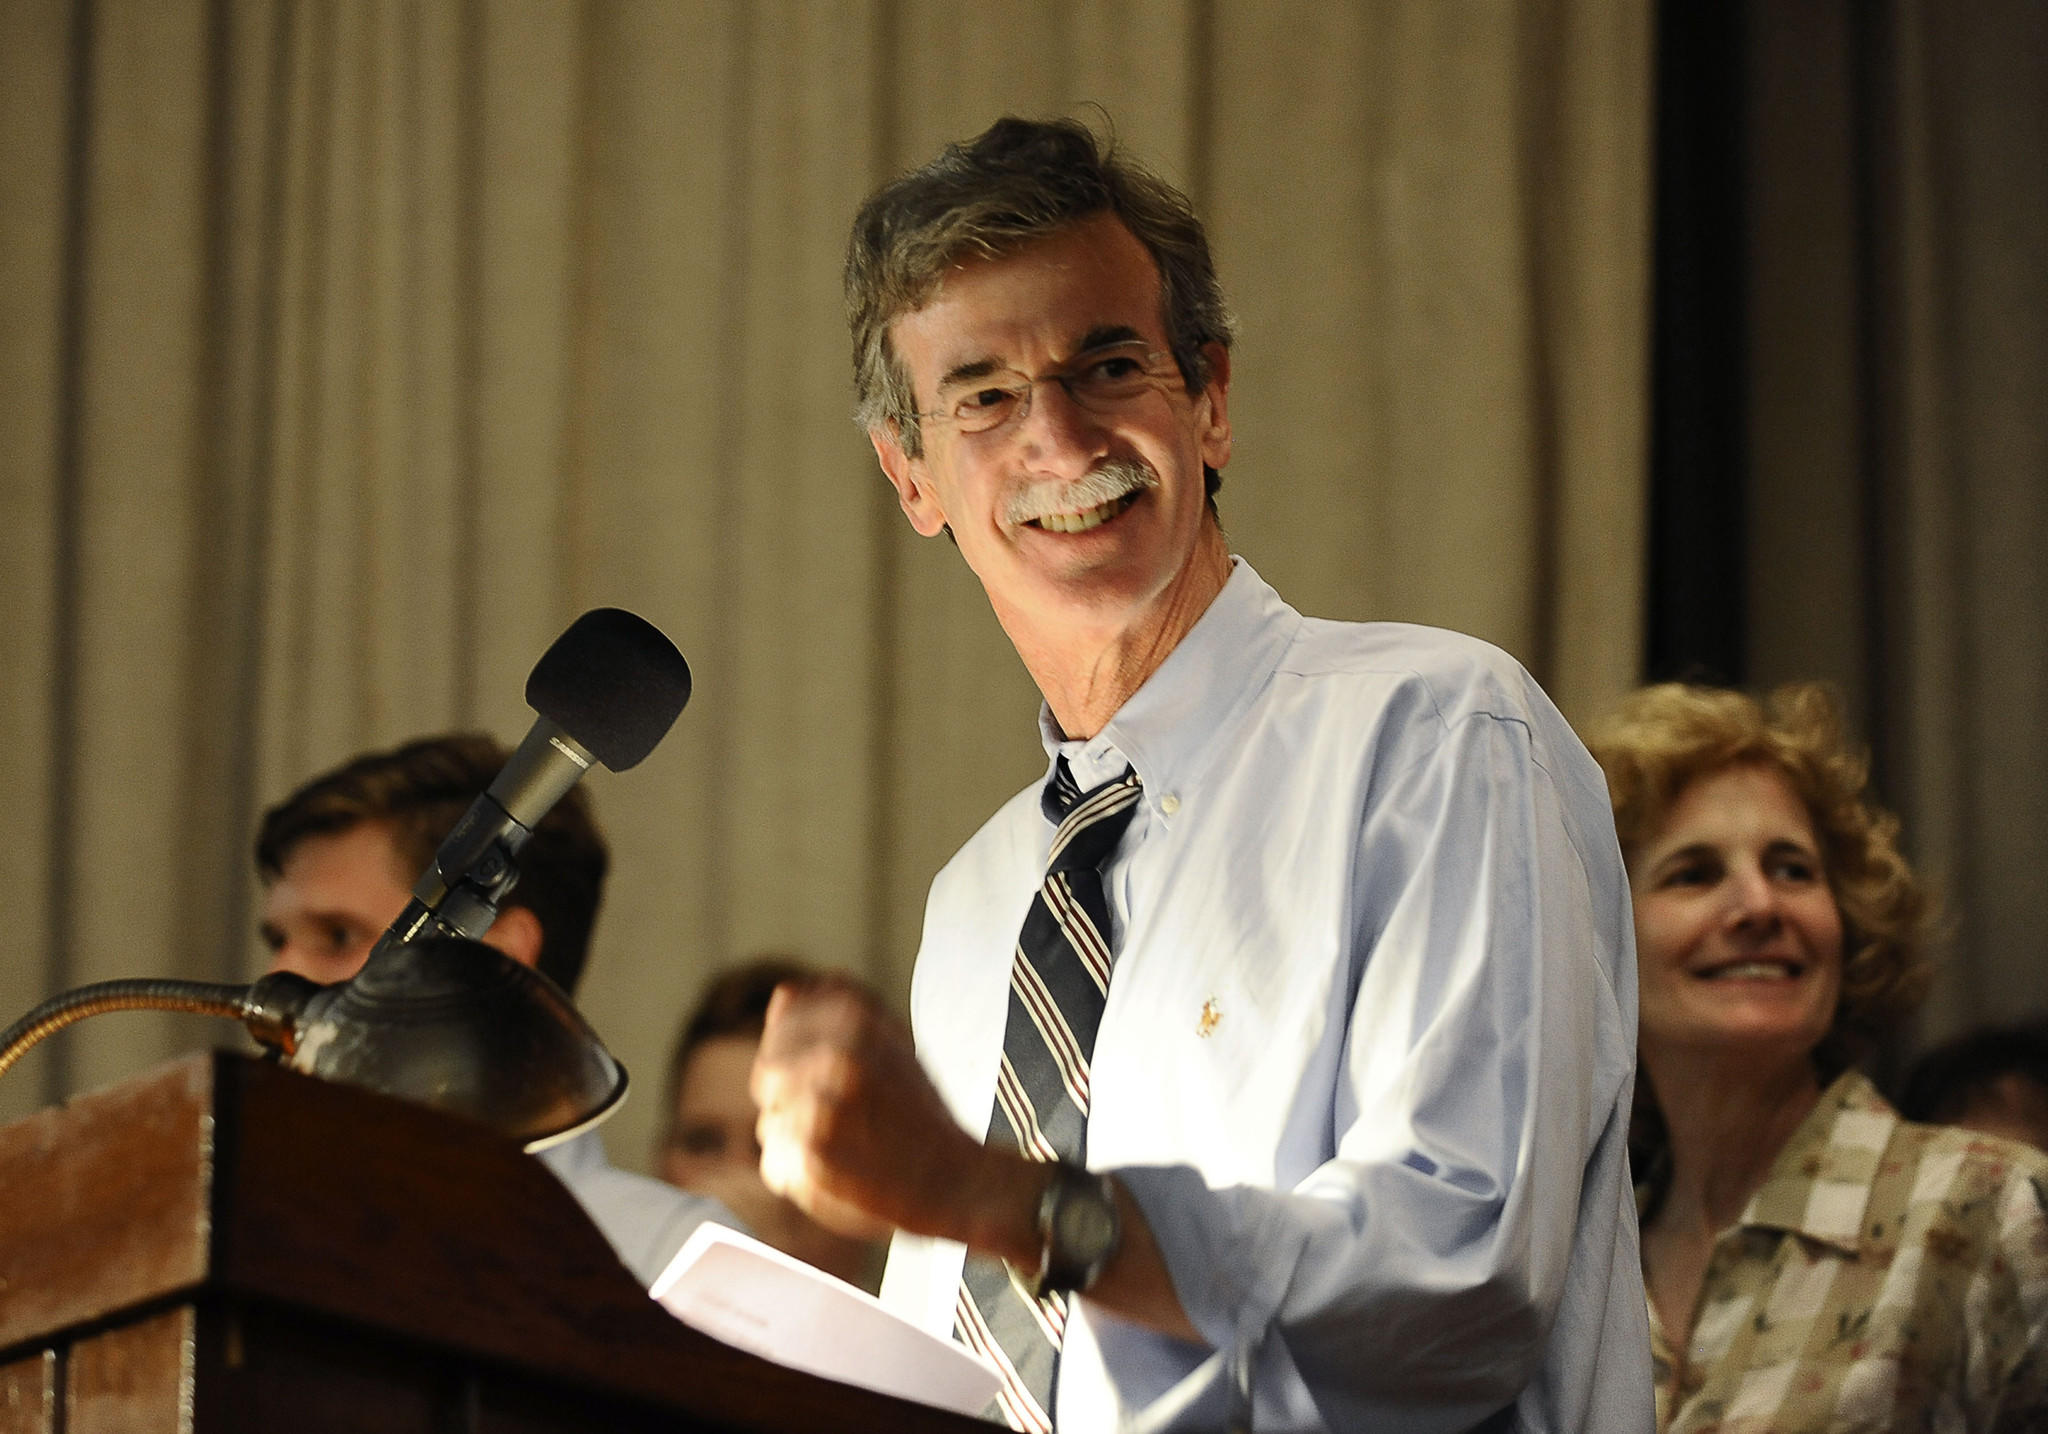 Brian Frosh speaks at his election night watch party in Chevy Chase.